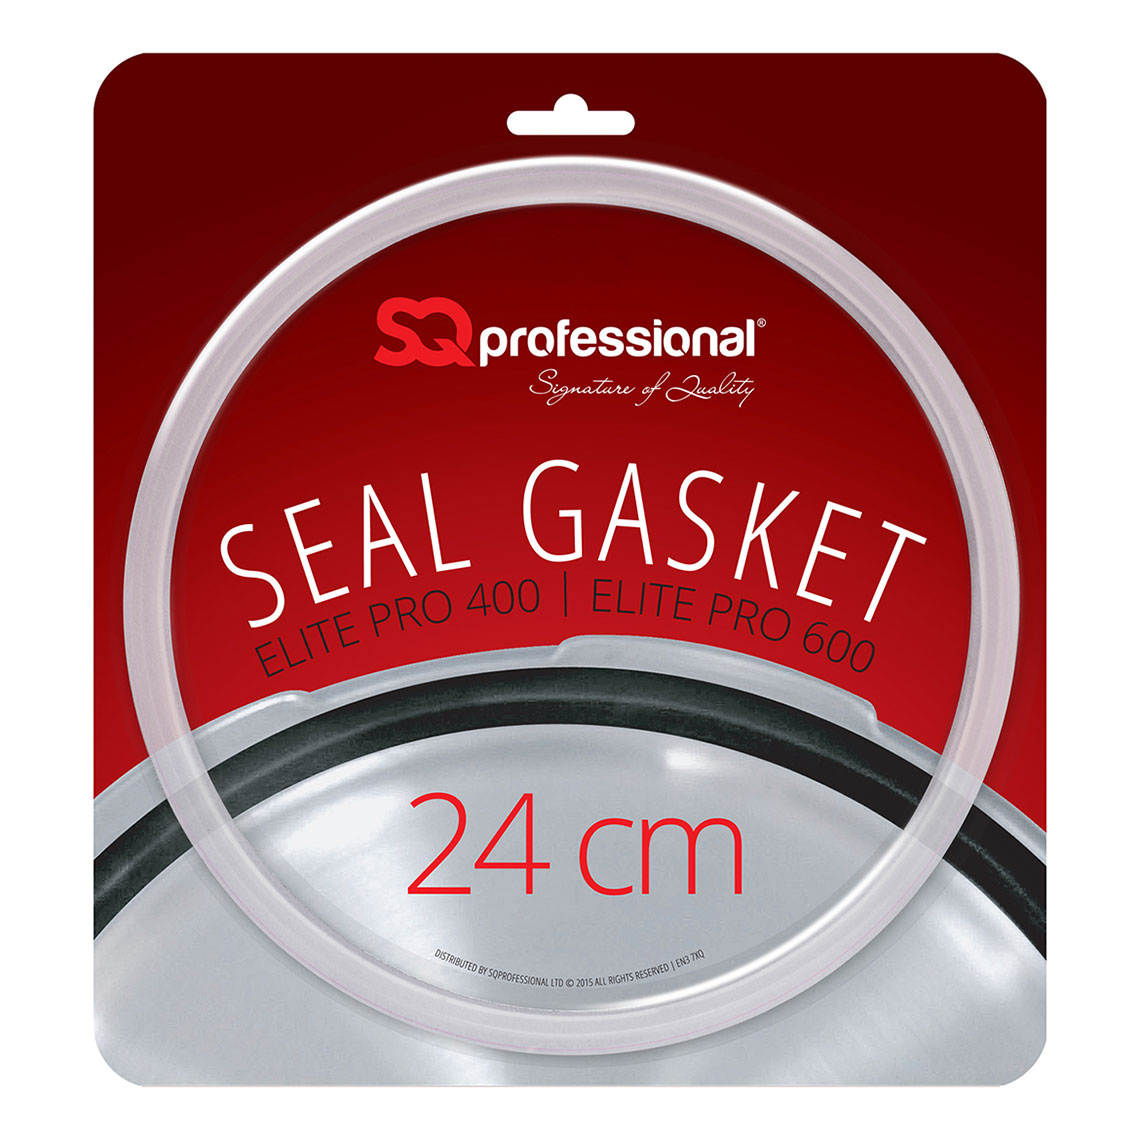 Sq Professional - Stainless Steel - Pressure Cooker Gasket